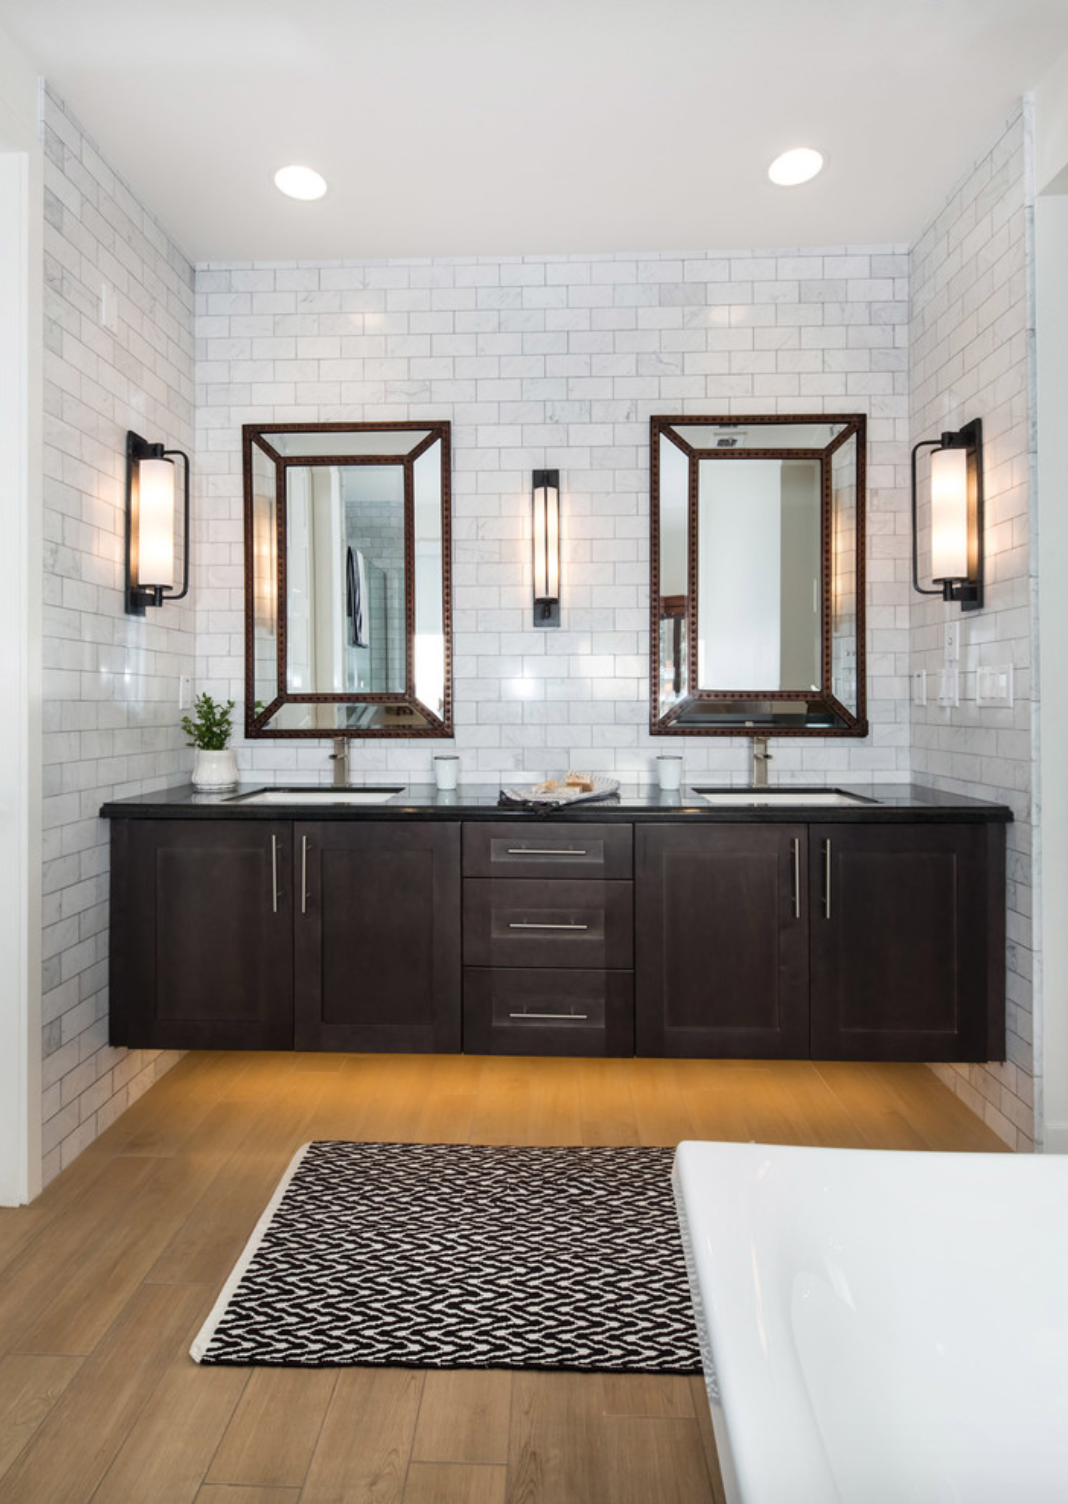 hardwood veneer flooring in modern farmhouse bathroom with white subway tile